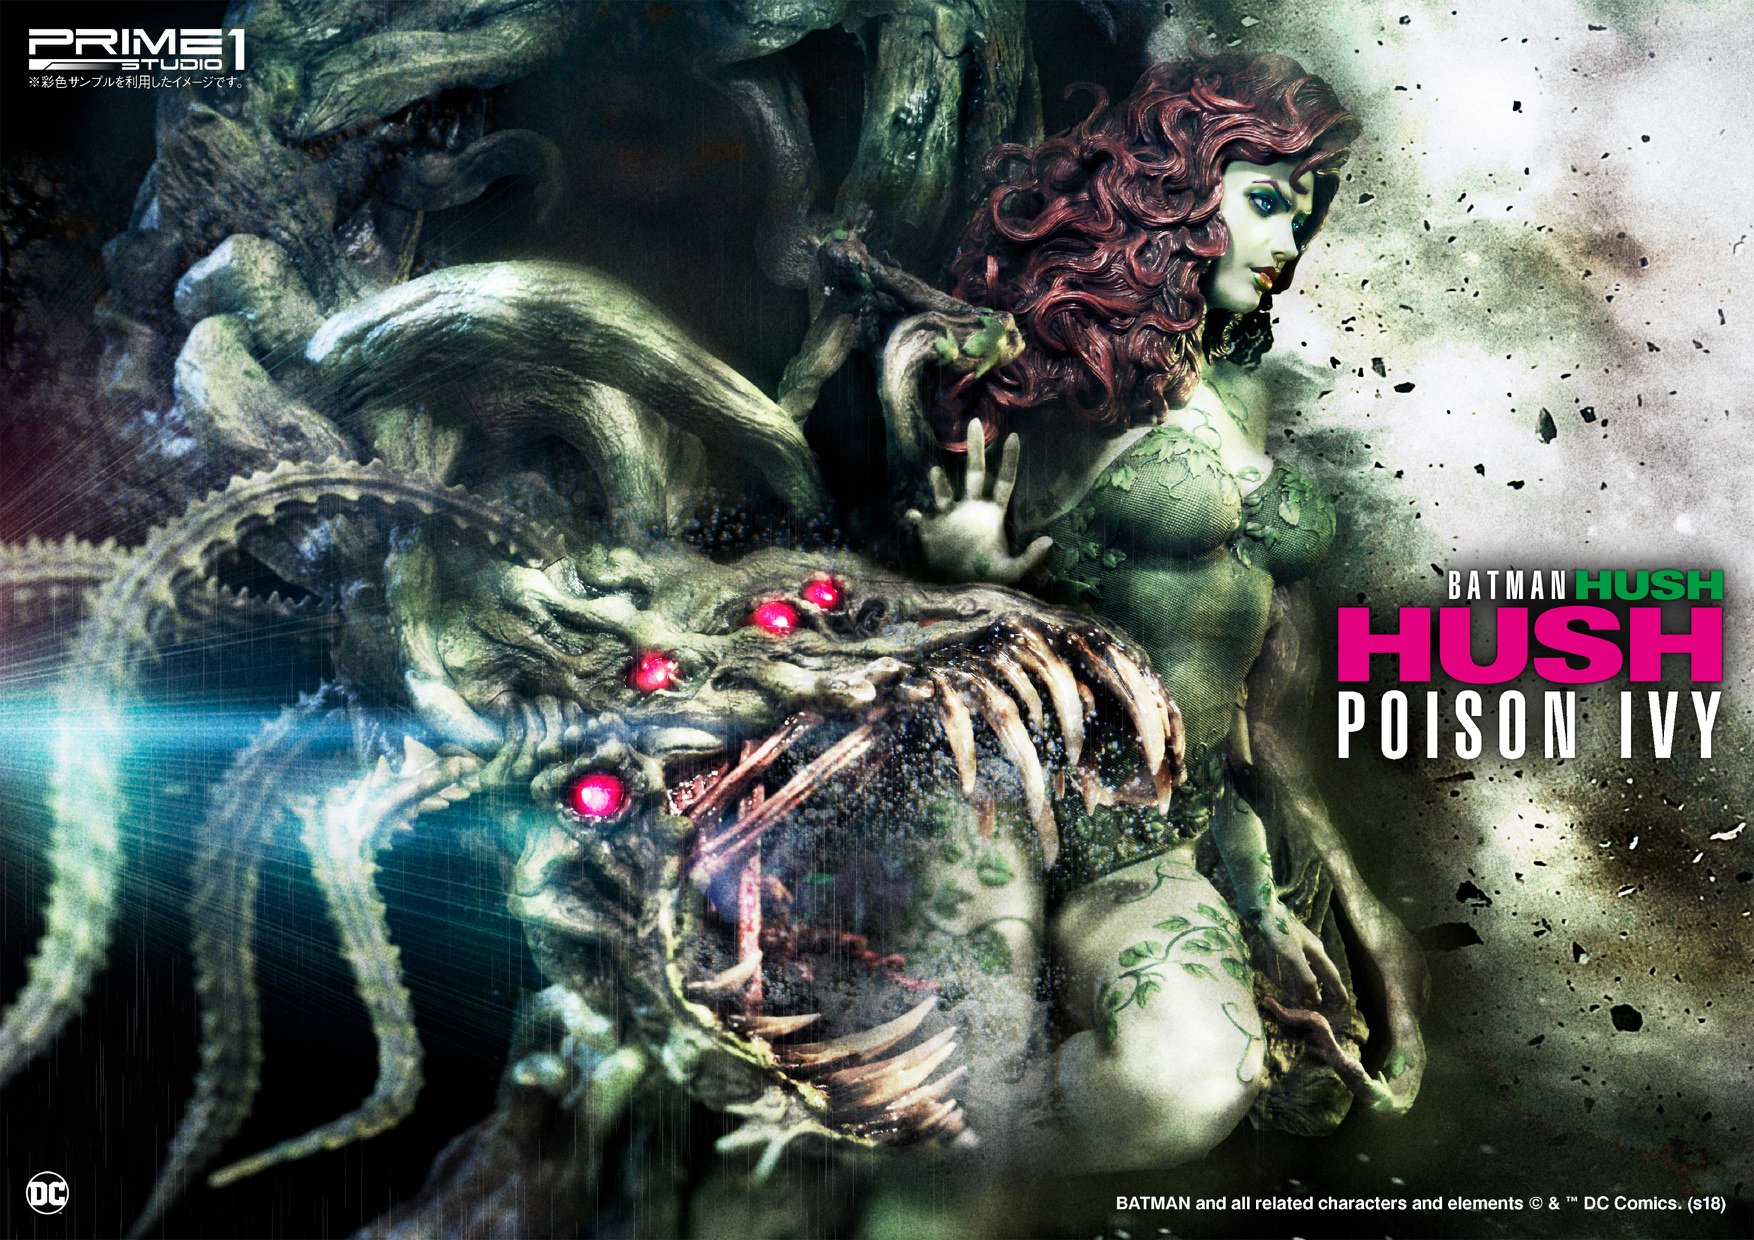 Batman Hush Poison Ivy Statue By Prime 1 Studio The Toyark News